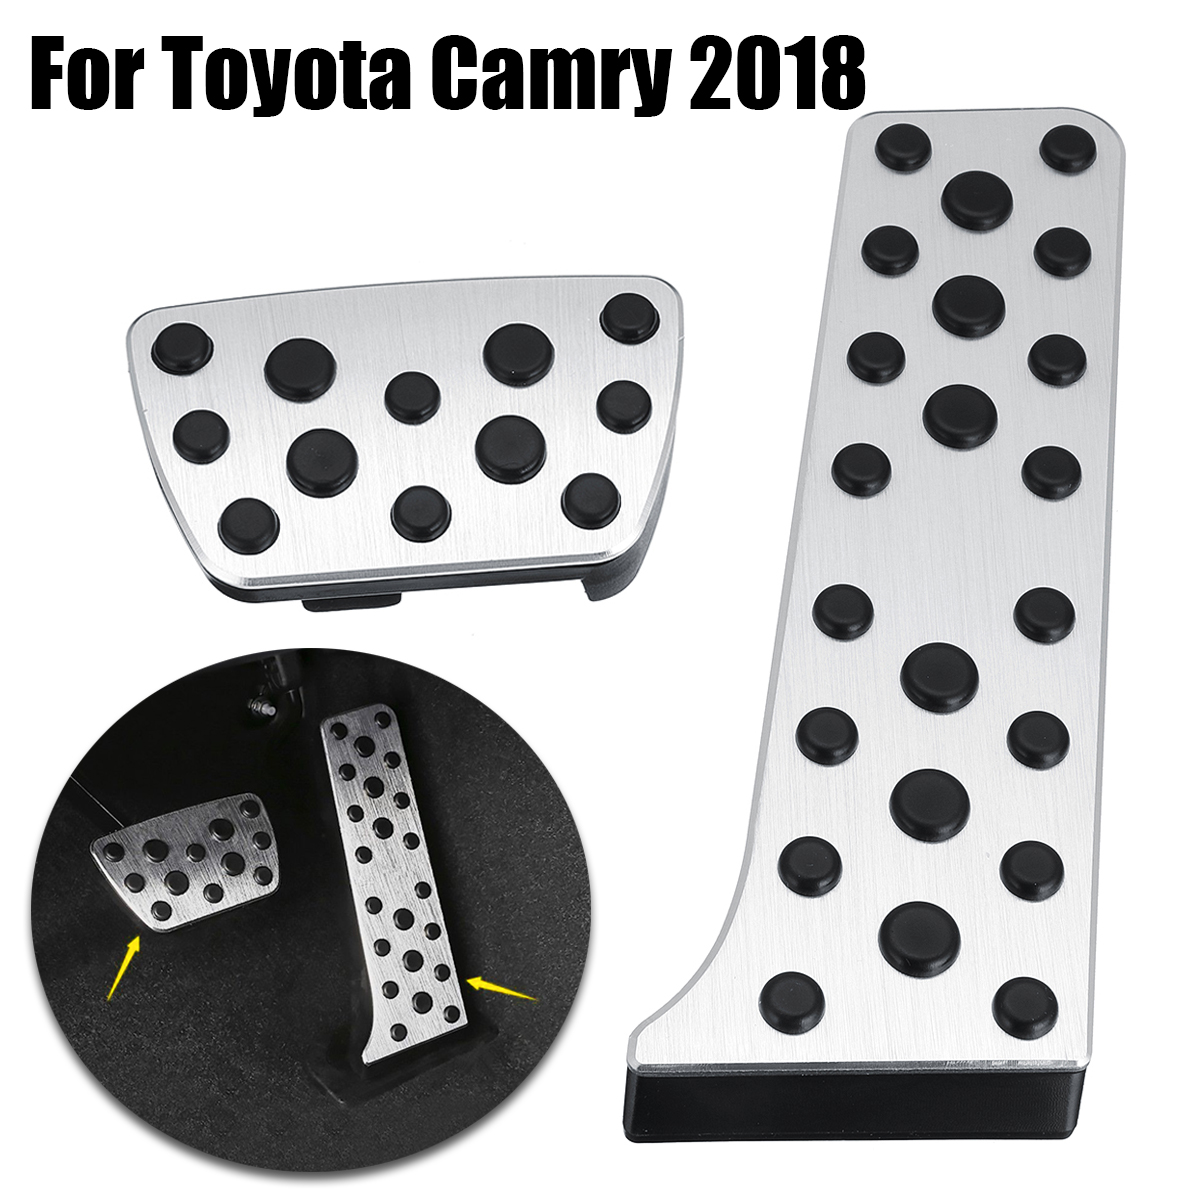 Autoleader Pair Interior Accelerator Pedal trim for Toyota Camry 2018 Silver Black Pedal Cover Interior Parts Auto Replacement